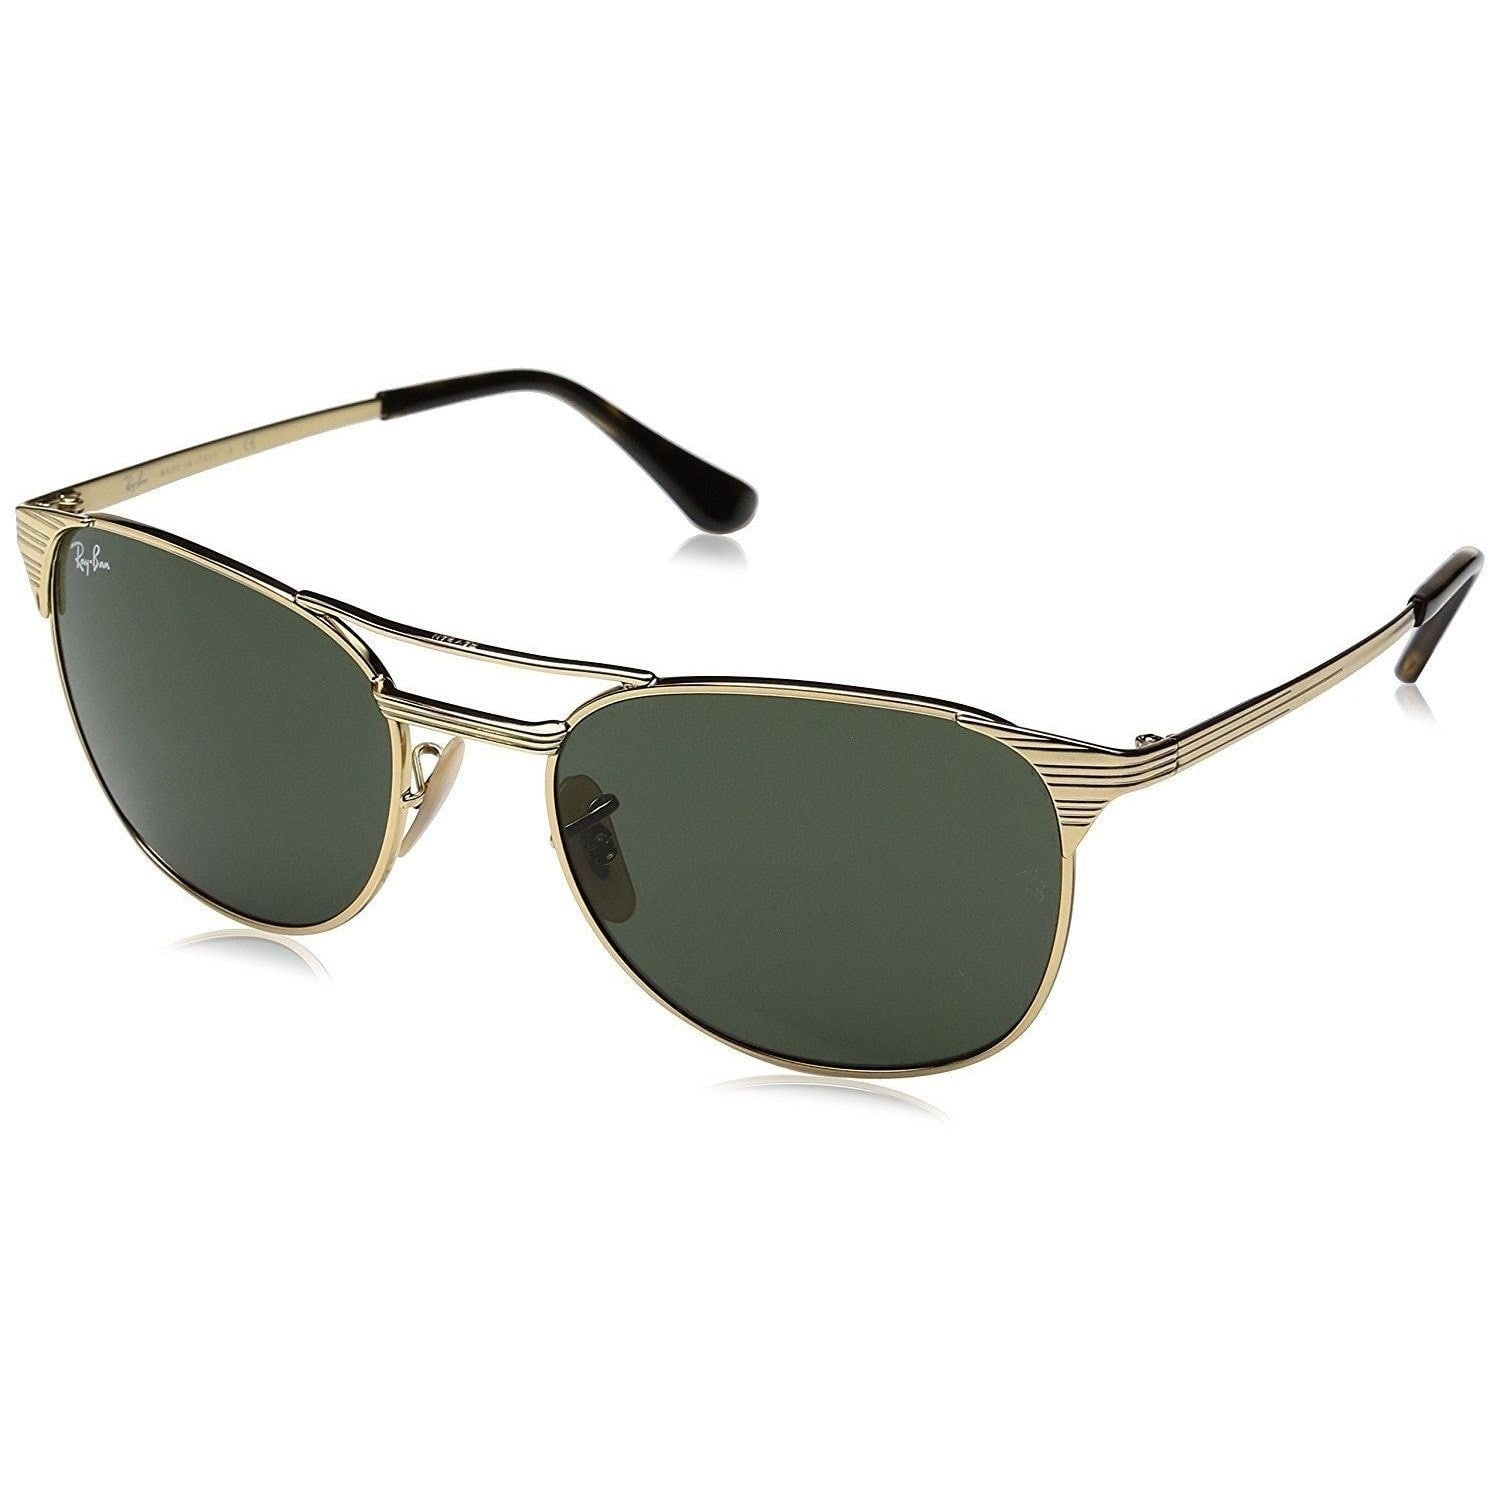 9007ed25598 Shop Ray-Ban RB3429M 001 Men s Signet Gold Frame Green Classic Lens  Sunglasses - Free Shipping Today - Overstock - 15002667